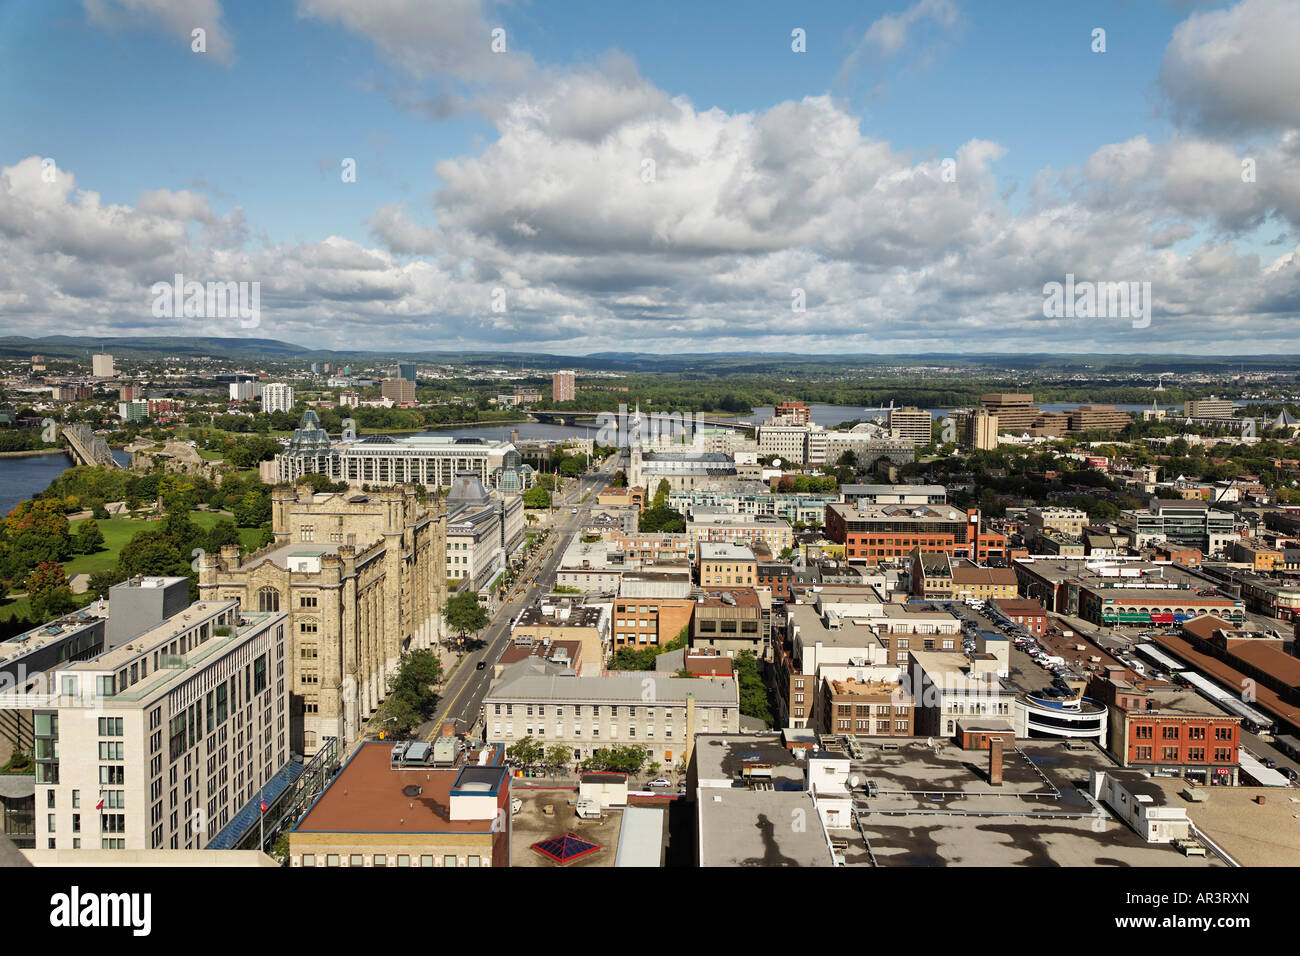 View of Ottawa neighborhoods. Ottawa consists of many architectural styles from Gothic Revival Renaissance and French - Stock Image